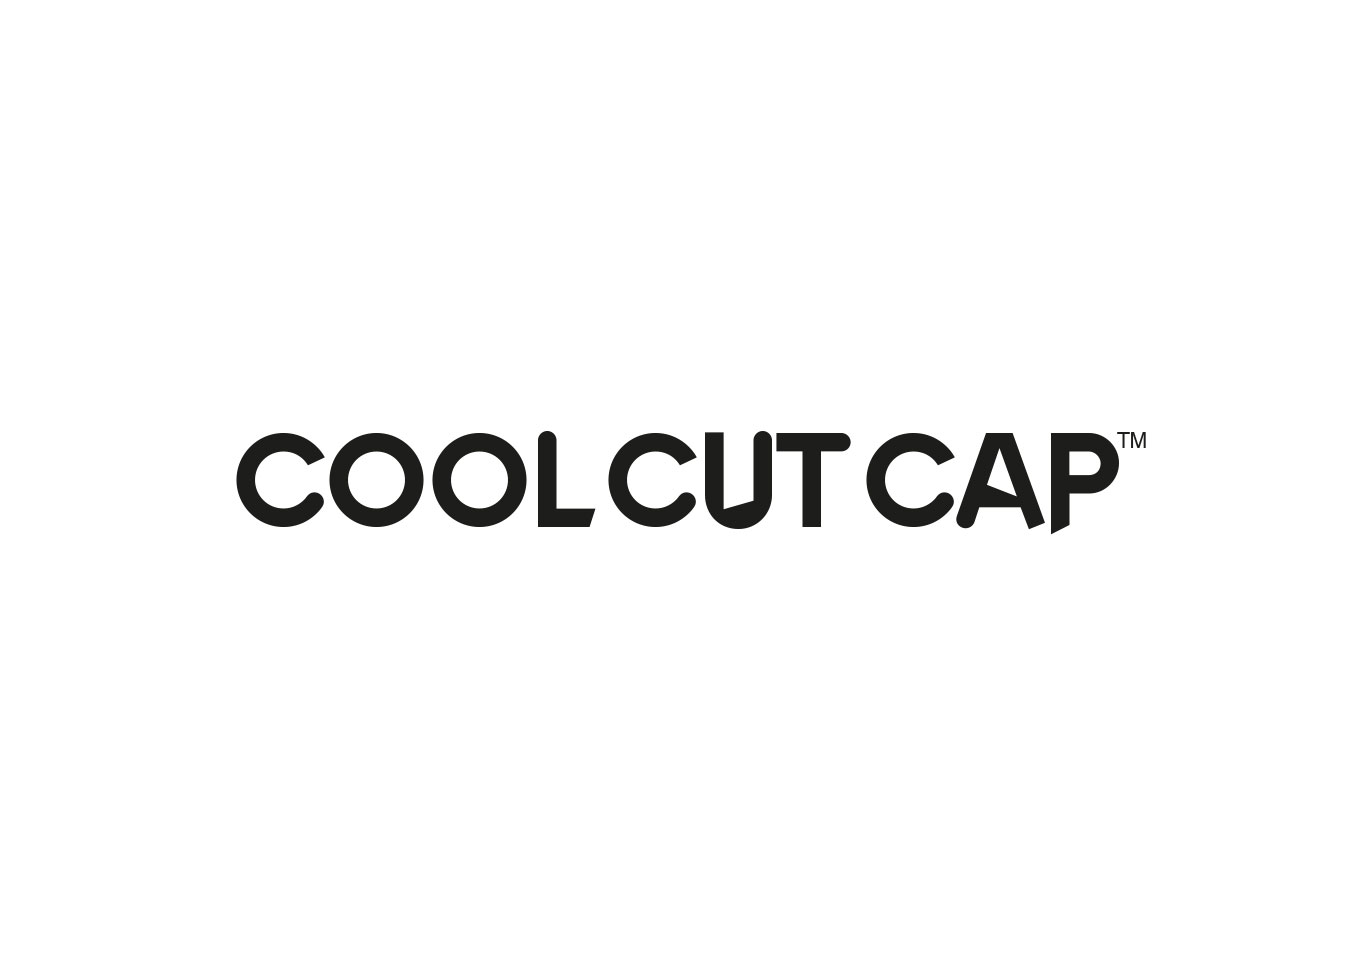 Cool_Cut_Cap_logo